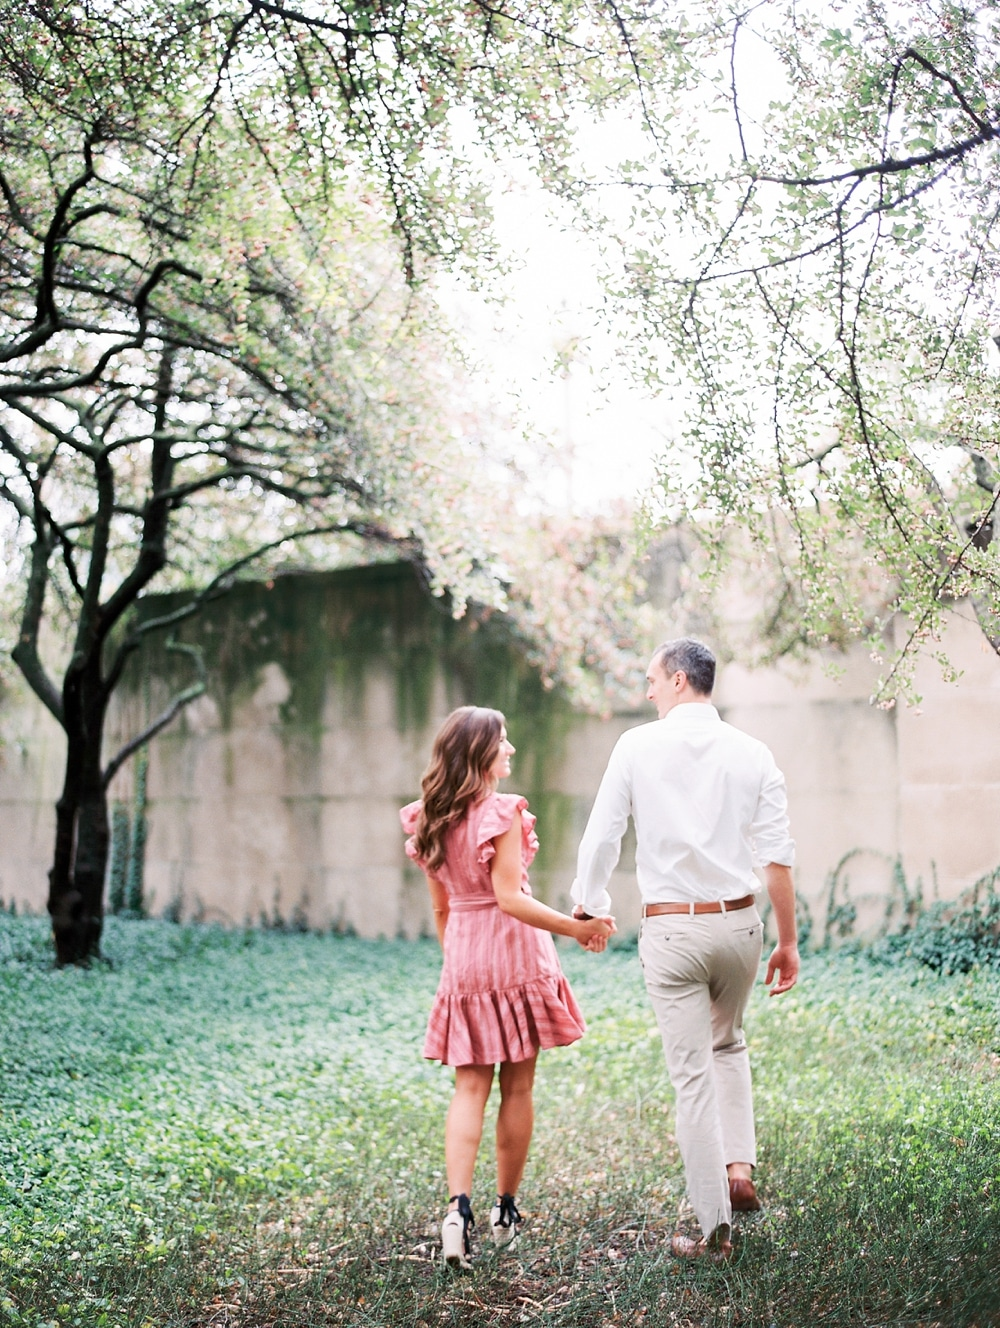 Kristin-La-Voie-Photography-chicago-art-institute-engagement-wedding-photos-69